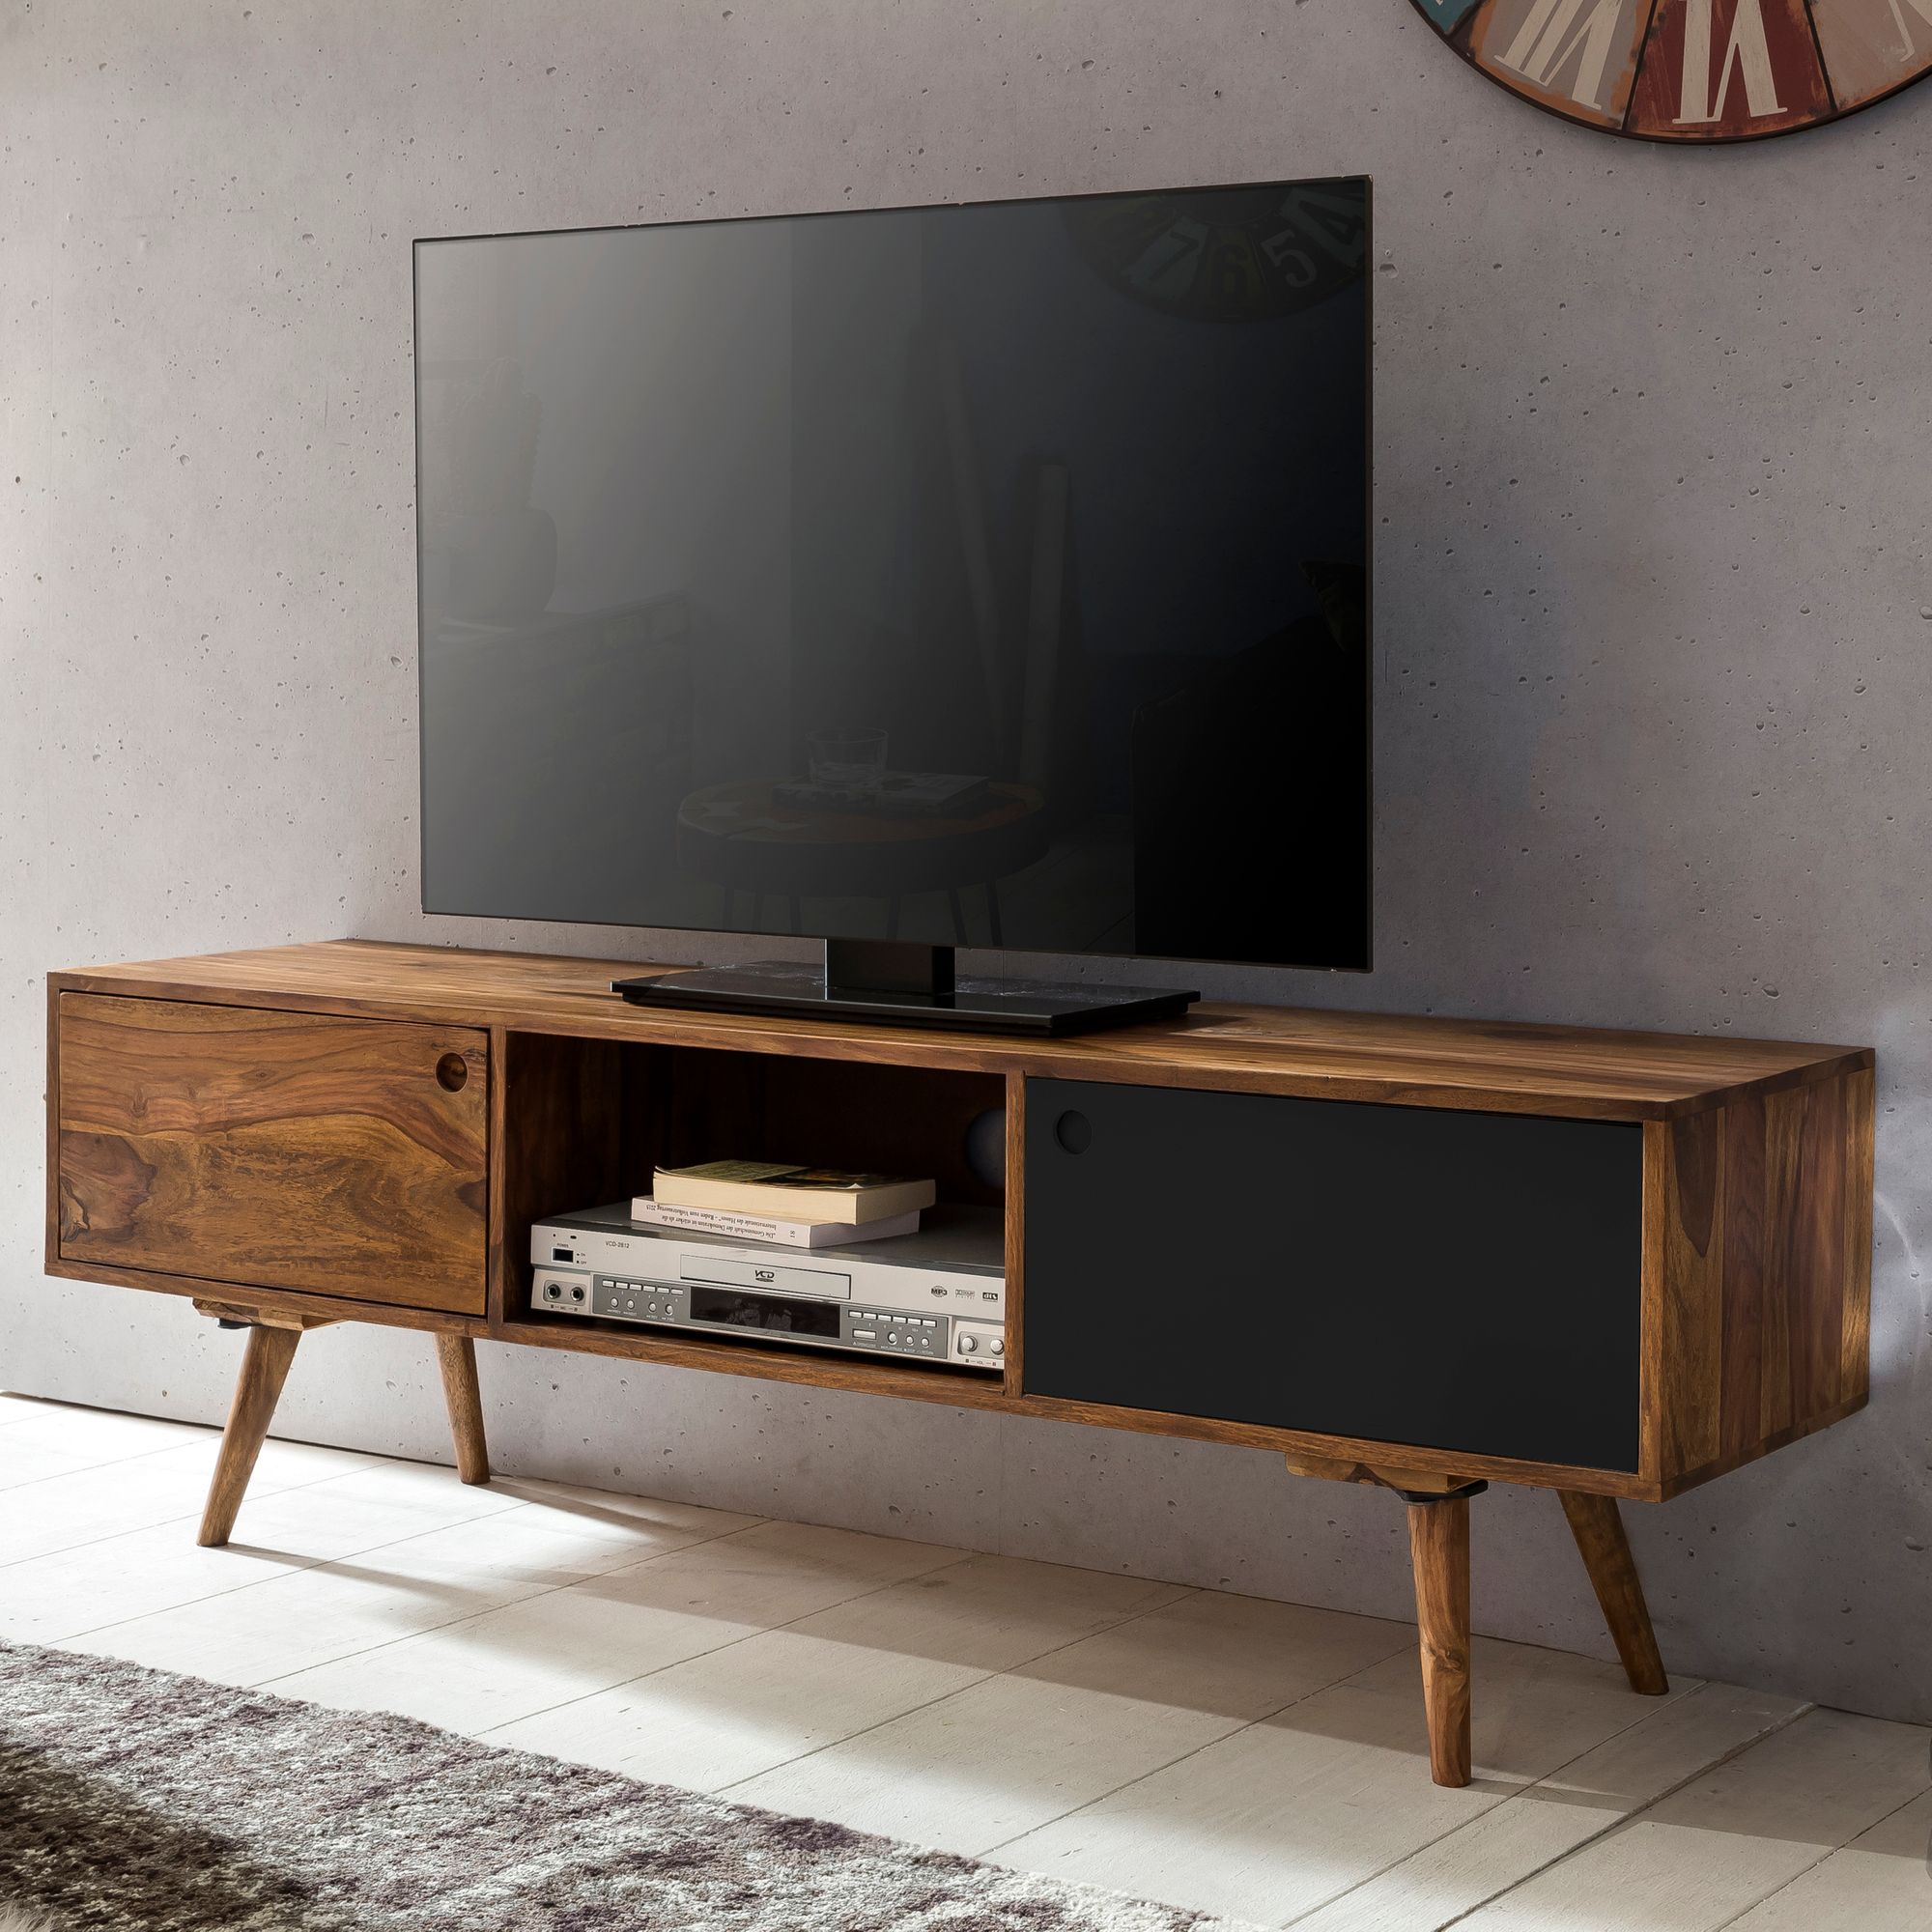 finebuy tv lowboard 140 cm massiv holz sheesham landhaus 2. Black Bedroom Furniture Sets. Home Design Ideas